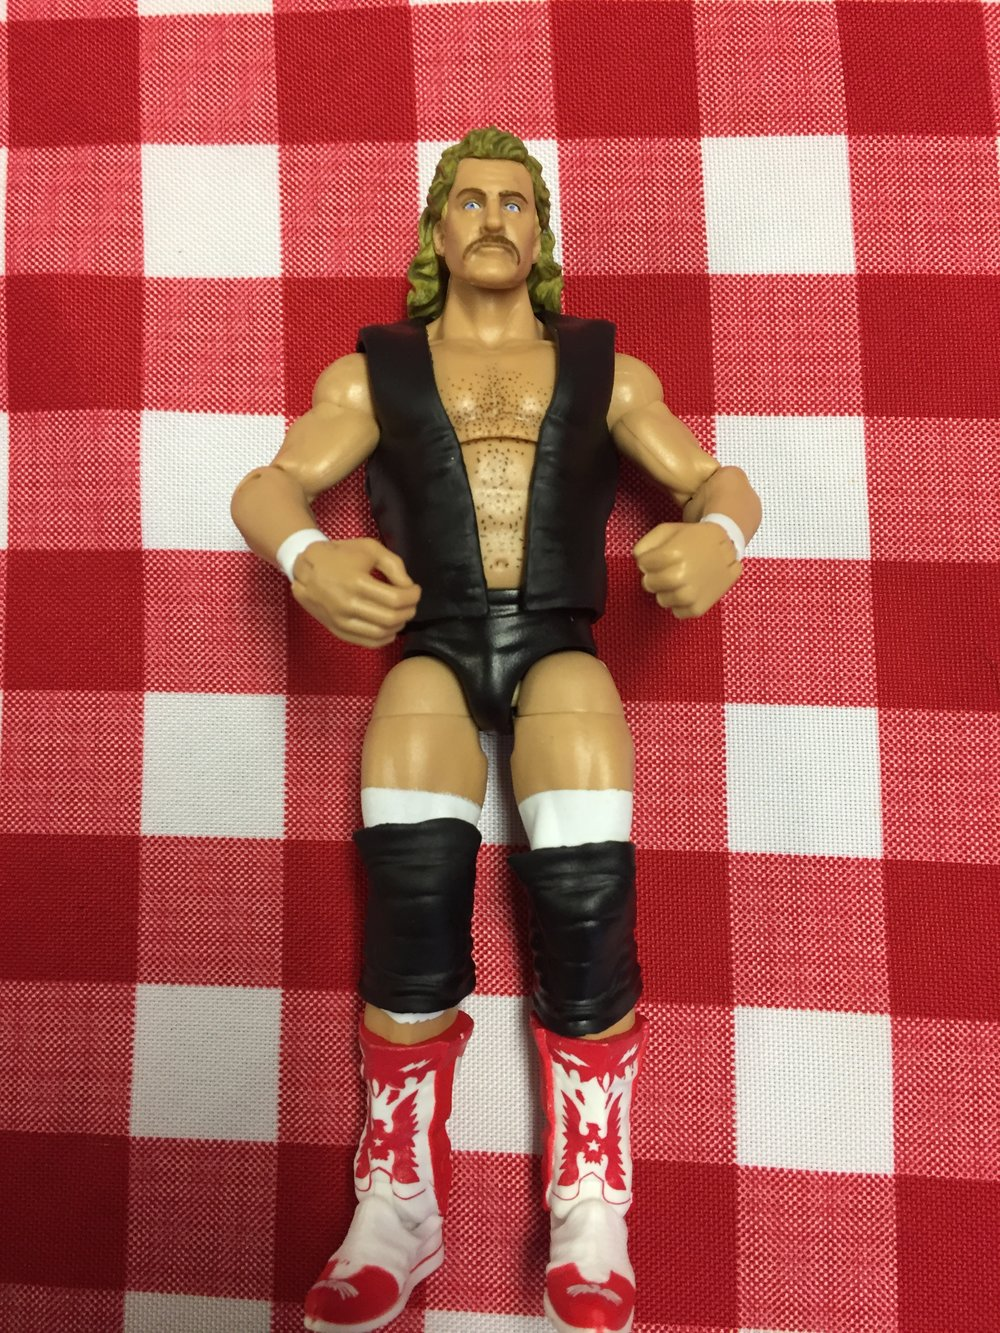 Magnum T.A. has a great head and face sculpt and comes with a removeable vest.